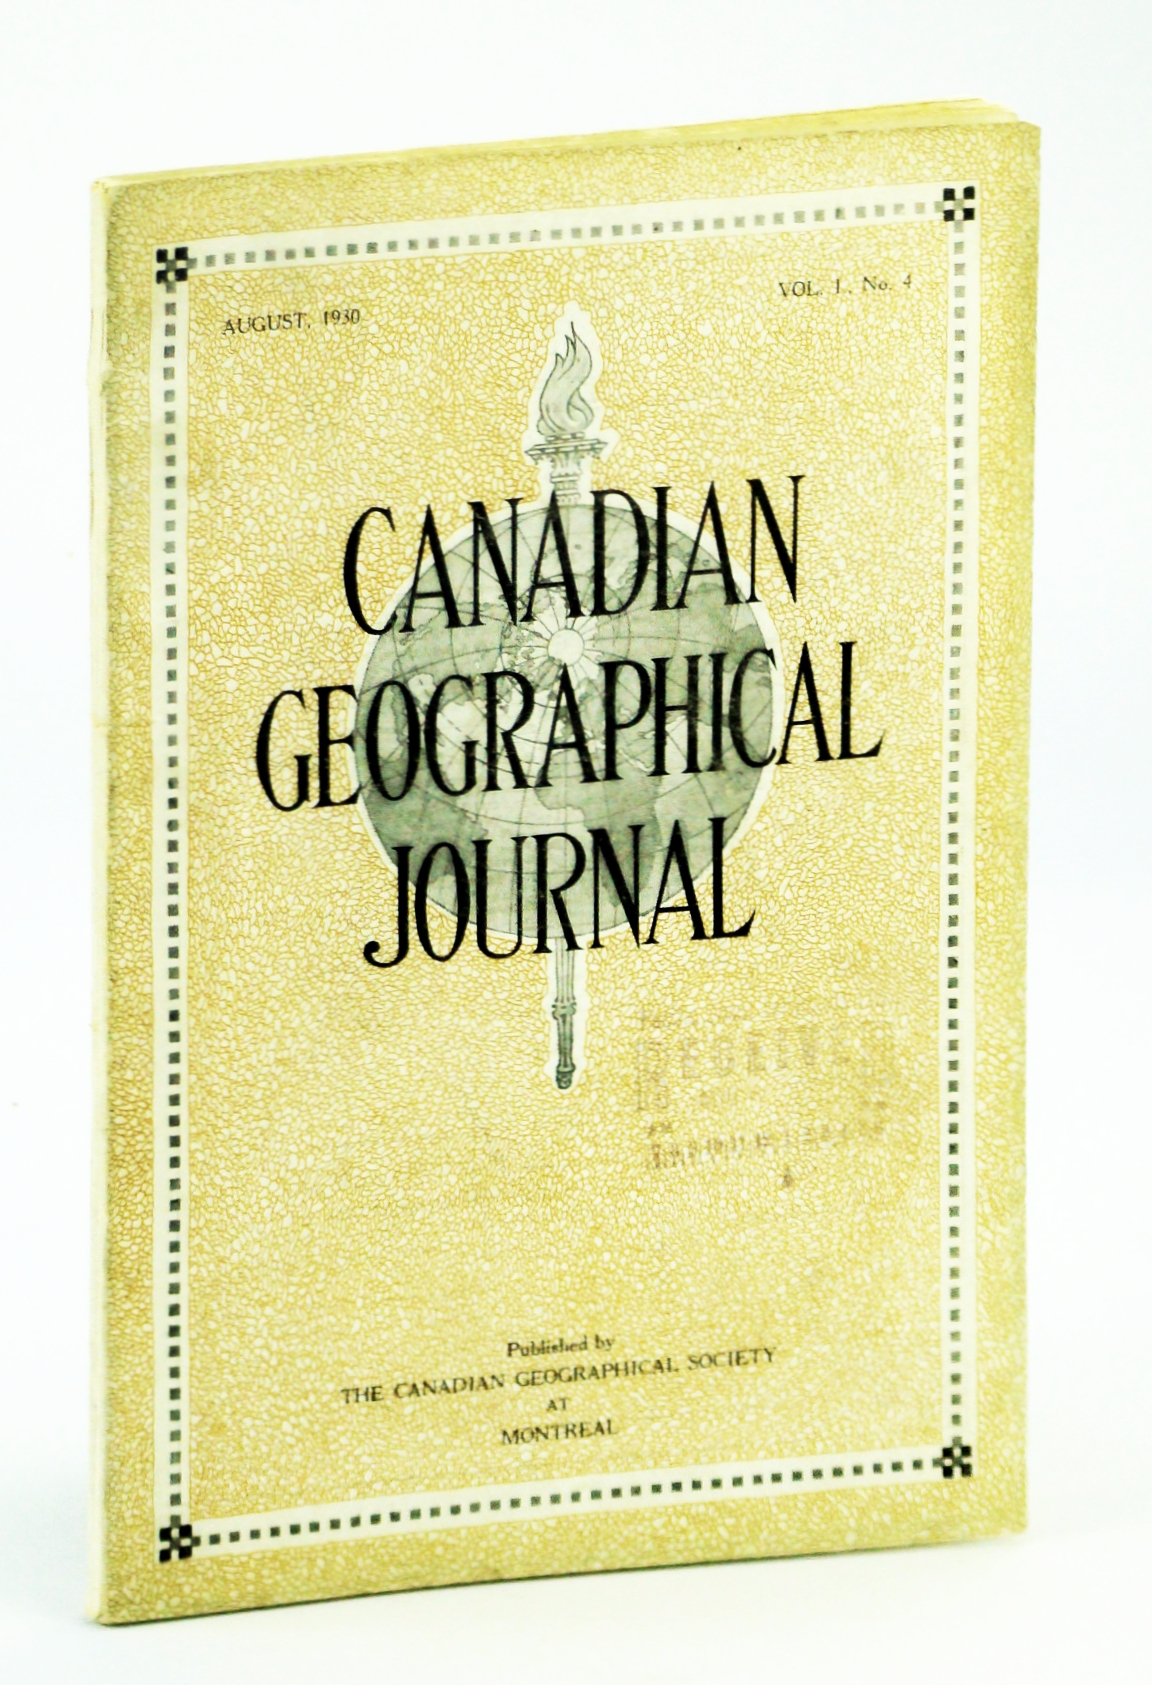 Image for Canadian Geographical Journal, August [Aug.], 1930, Vol. 1, No. 4 - Air-mail Pilot's Log of Captain O.S. Bondurant, Captain H.S. Quigley, and Colonel R.H. Mulock / Norway House, Manitoba